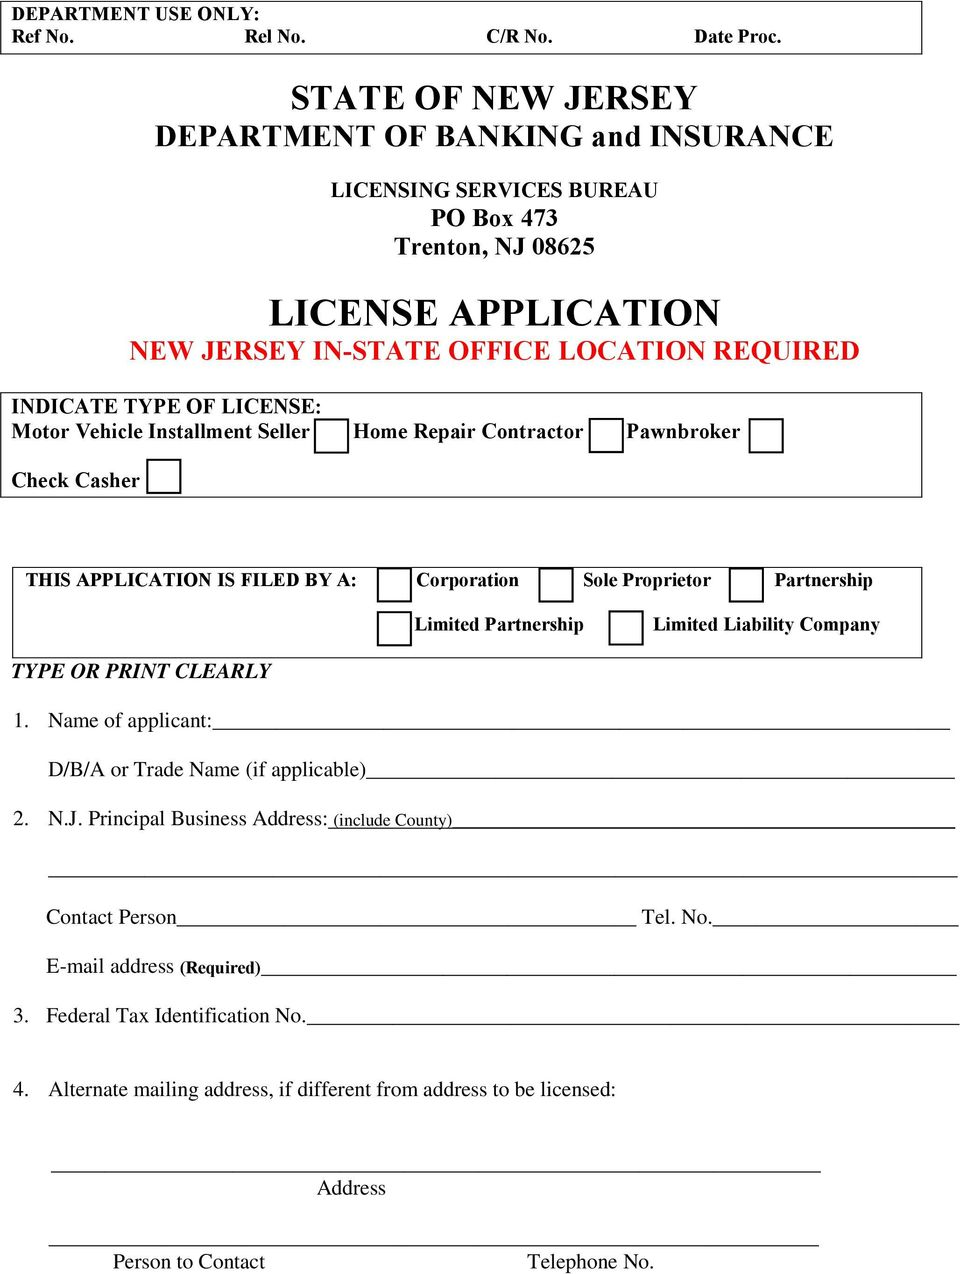 LICENSE: Motor Vehicle Installment Seller Home Repair Contractor Pawnbroker Check Casher THIS APPLICATION IS FILED BY A: Corporation Sole Proprietor Partnership Limited Partnership Limited